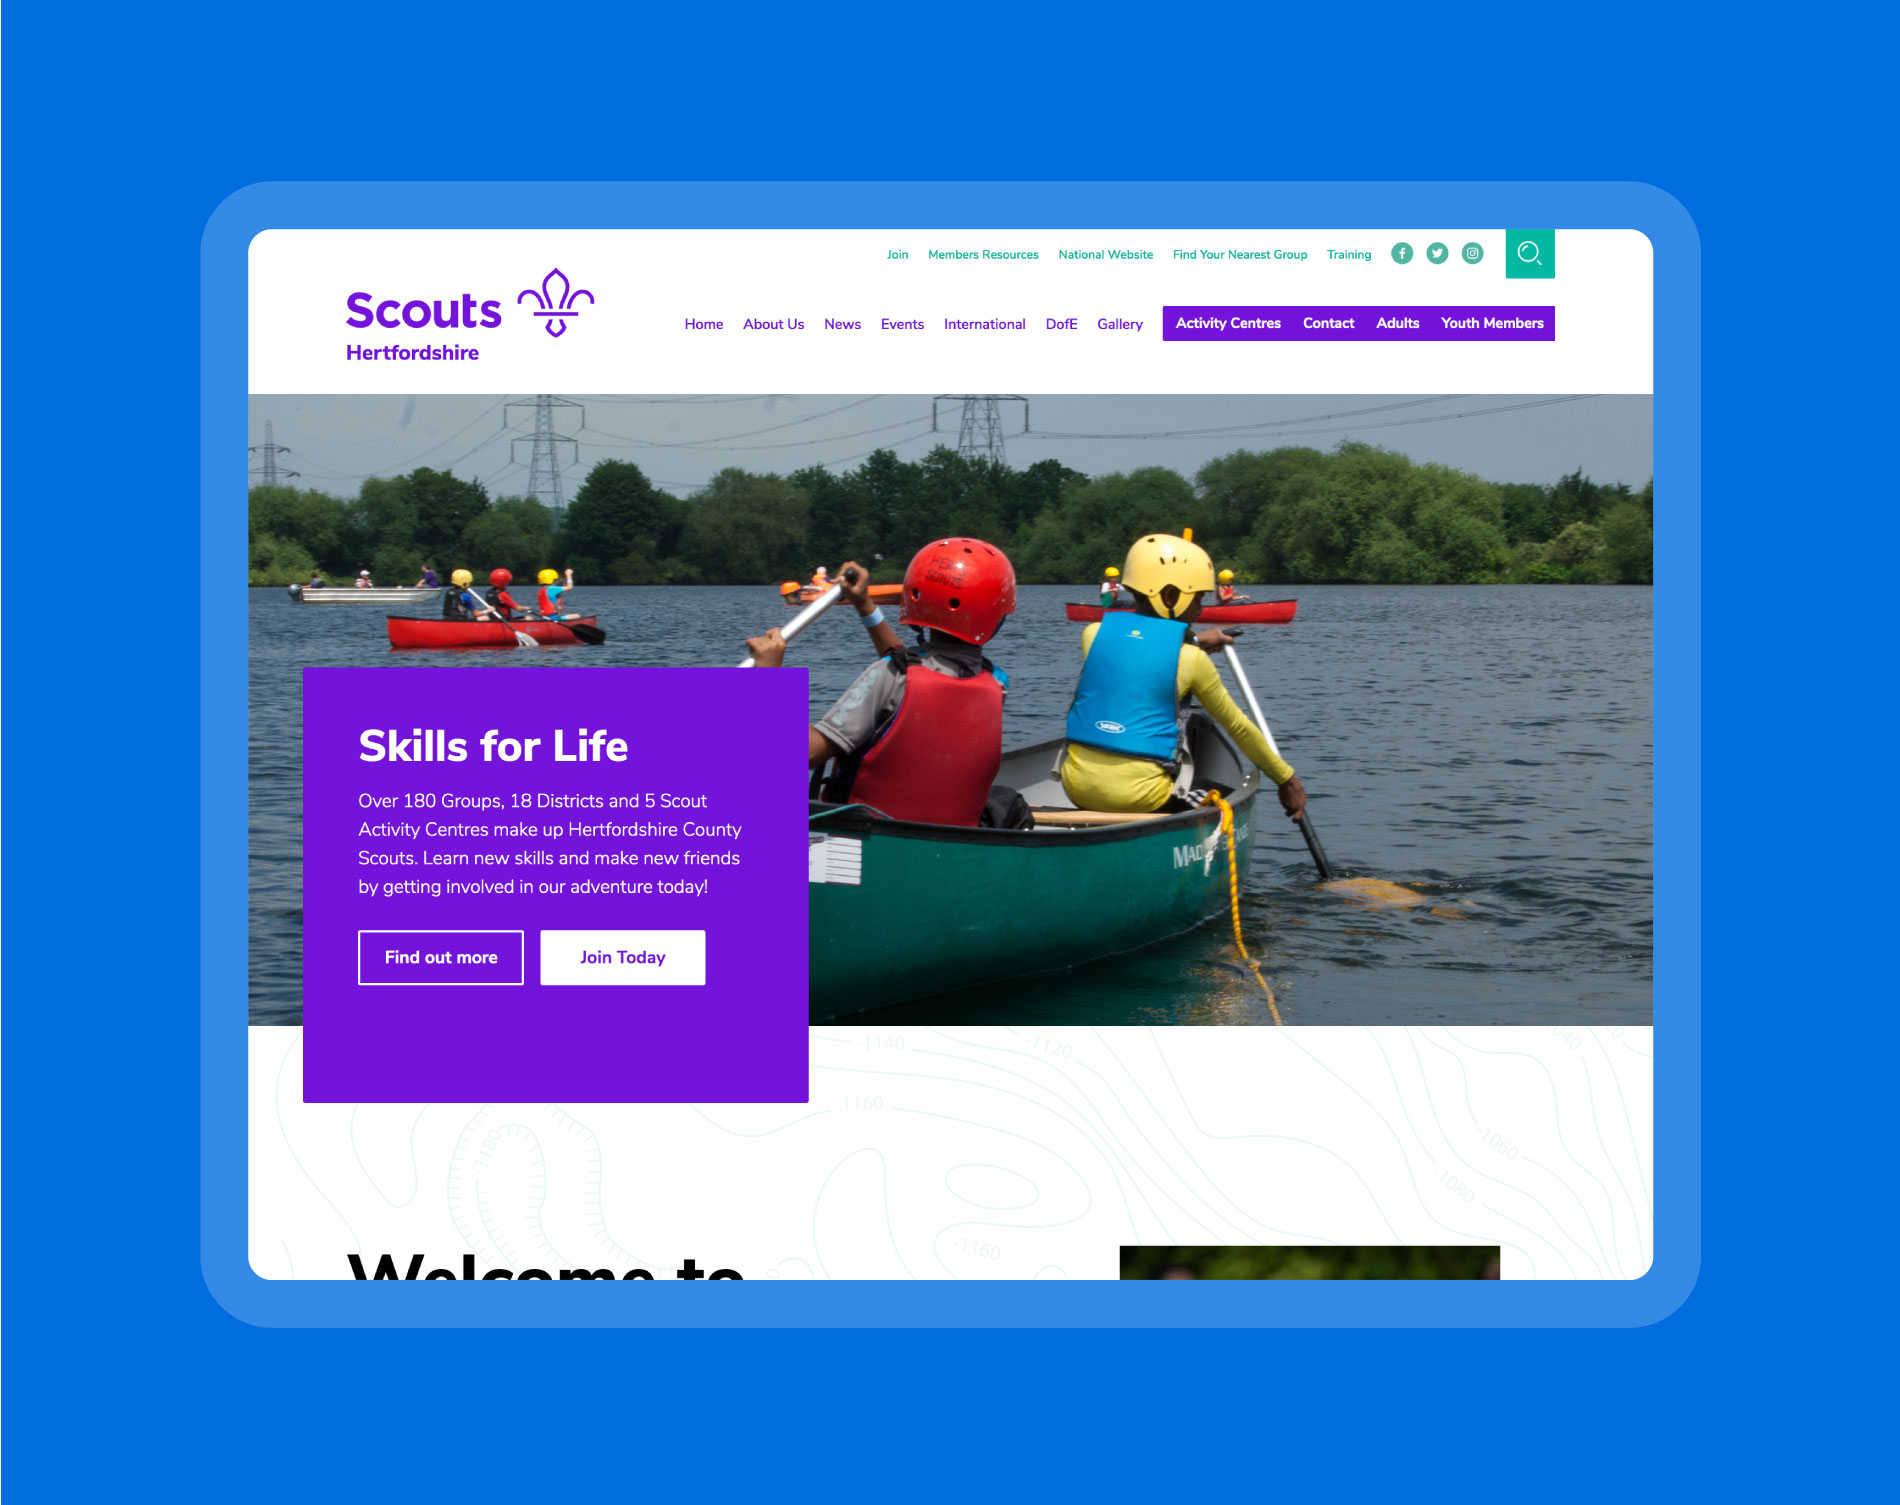 The new website takes all of Hertfordshire's favourite elements from the old version and has evolved them to look better and make it more user friendly.